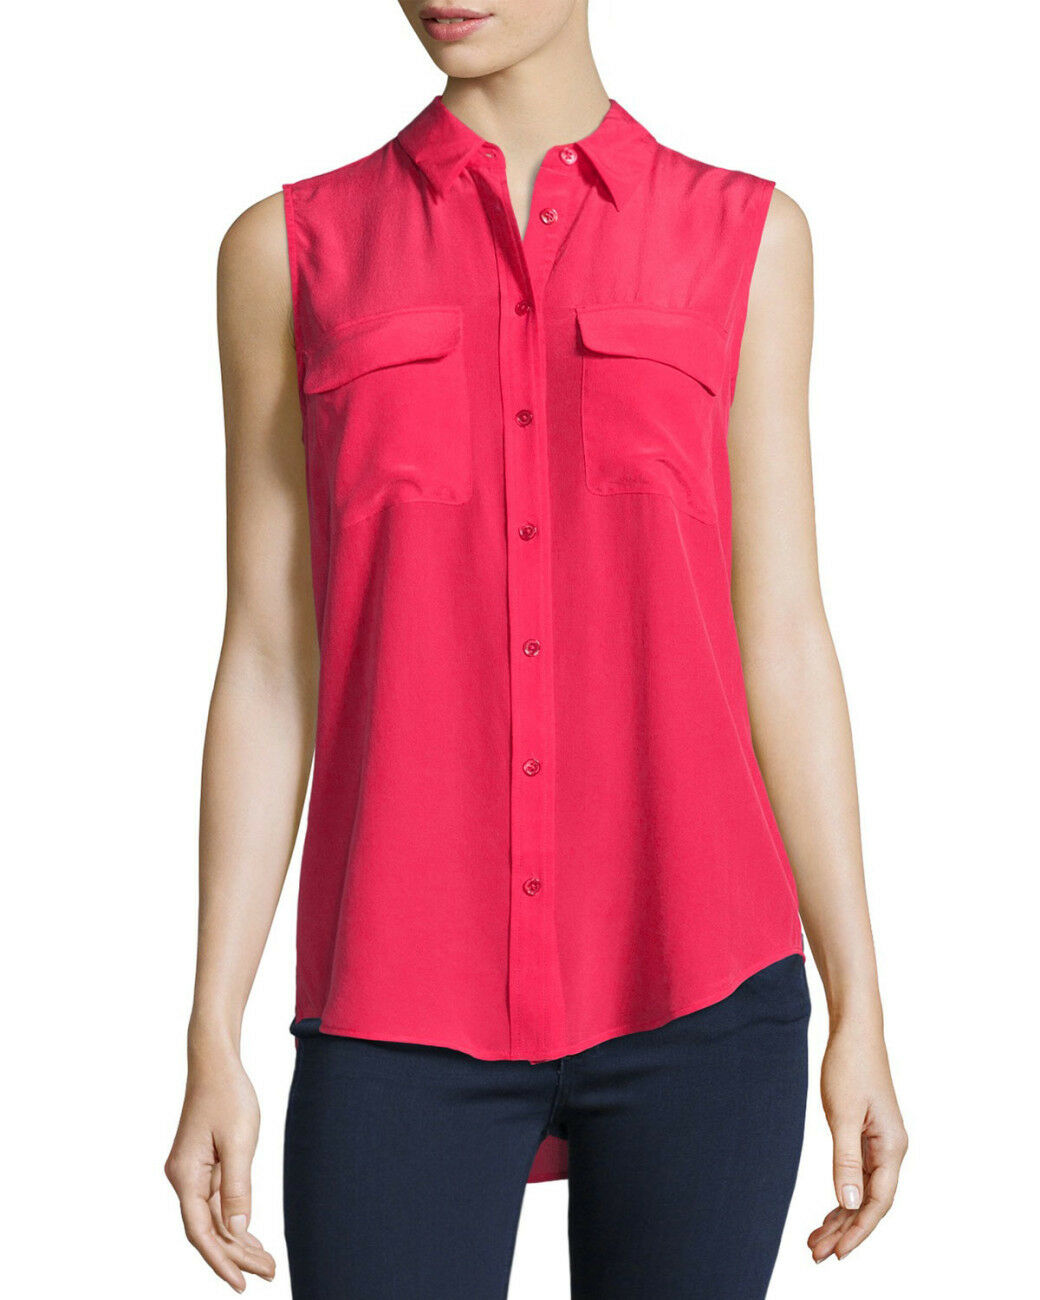 NWT Equipment 100% Silk L Slim Signature Blouse Shirt Sleeveless pinktta